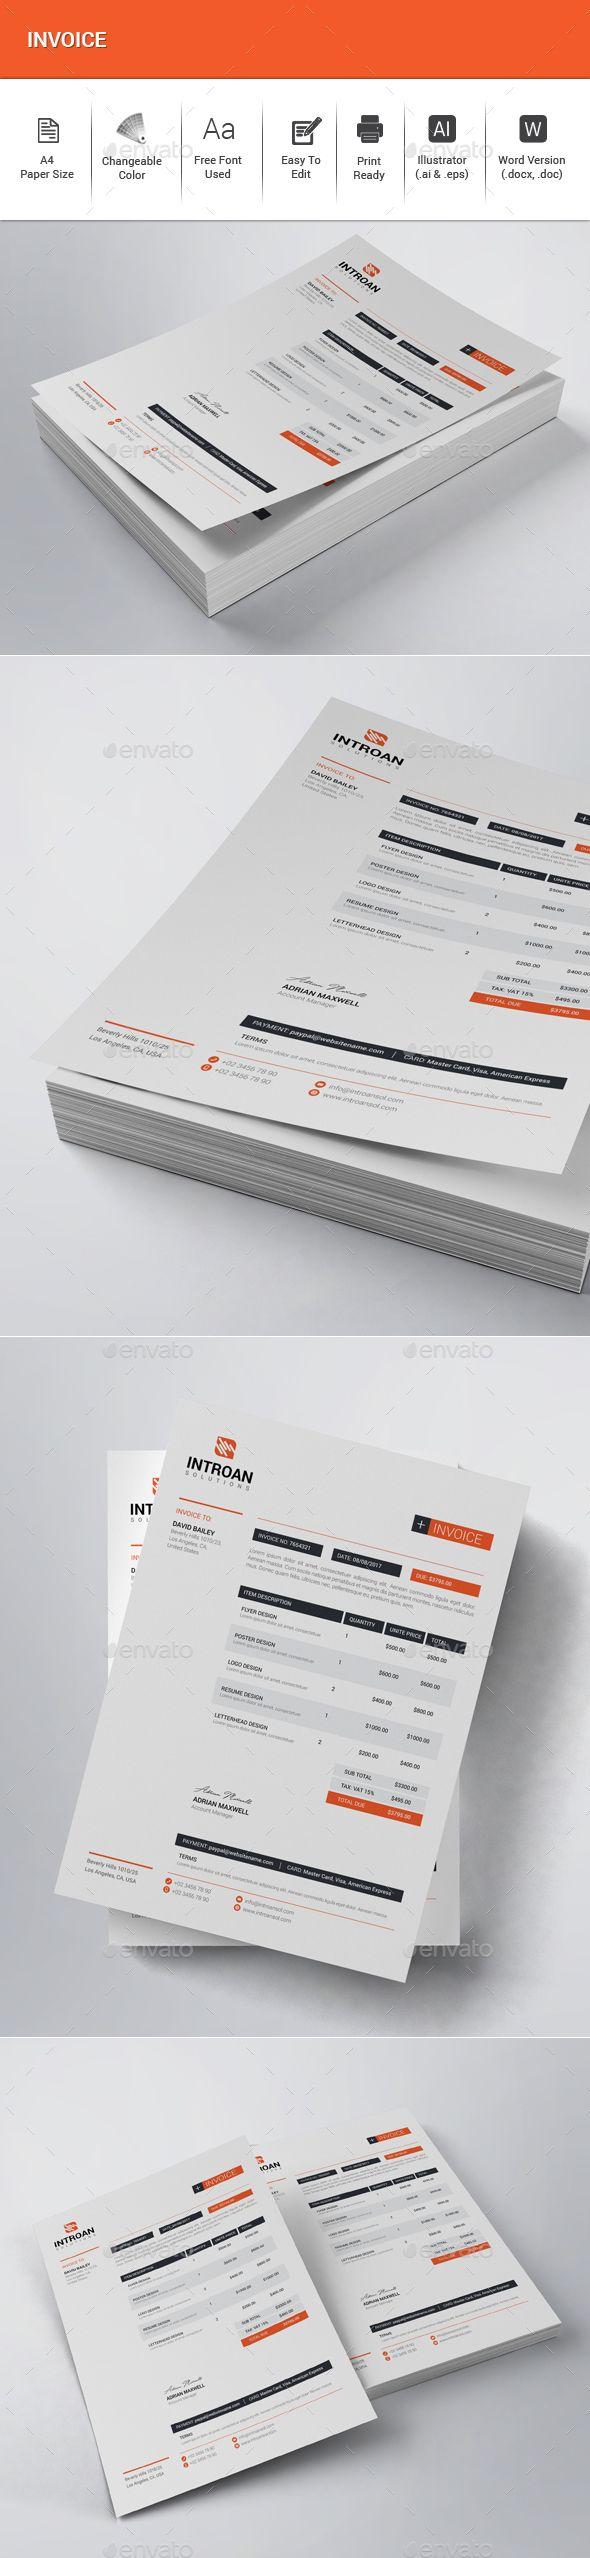 #Invoice - #Proposals & Invoices Stationery Download here:   https://graphicriver.net/item/invoice/20456060?ref=alena994